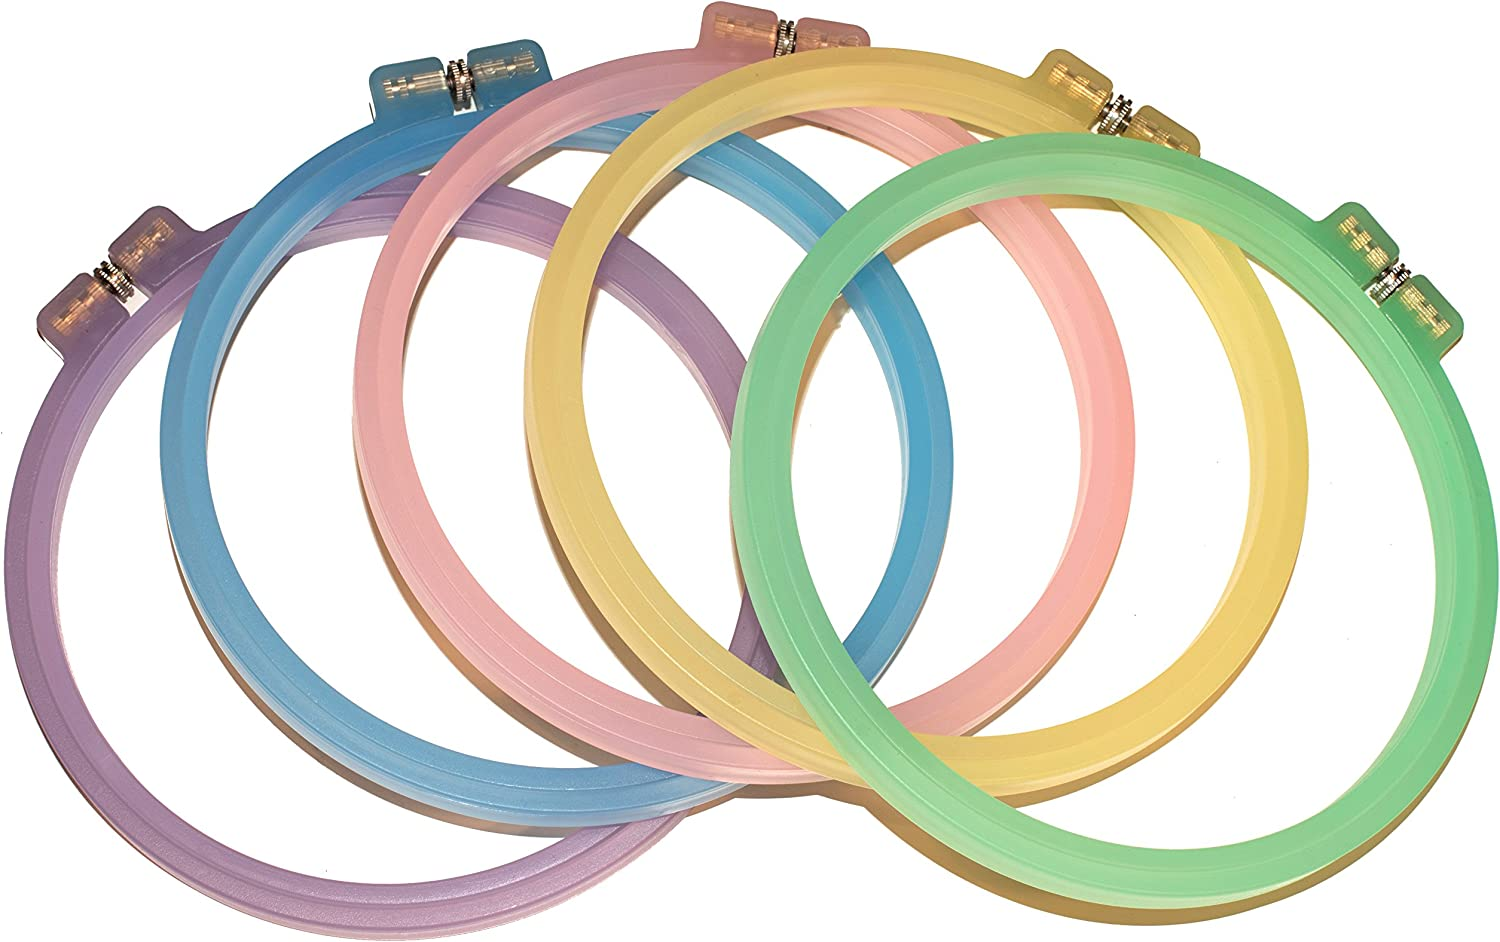 Celley 5 Pieces Embroidery Hoops Set 5 Pastel Color Collection 6 Inch Cross Stitch Hoop Rings